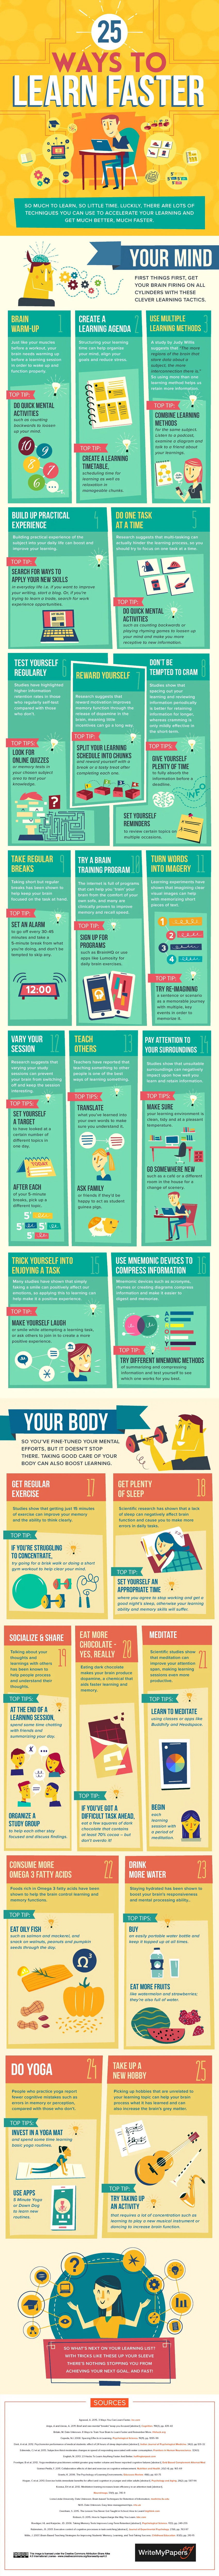 25 way to learn faster infographic